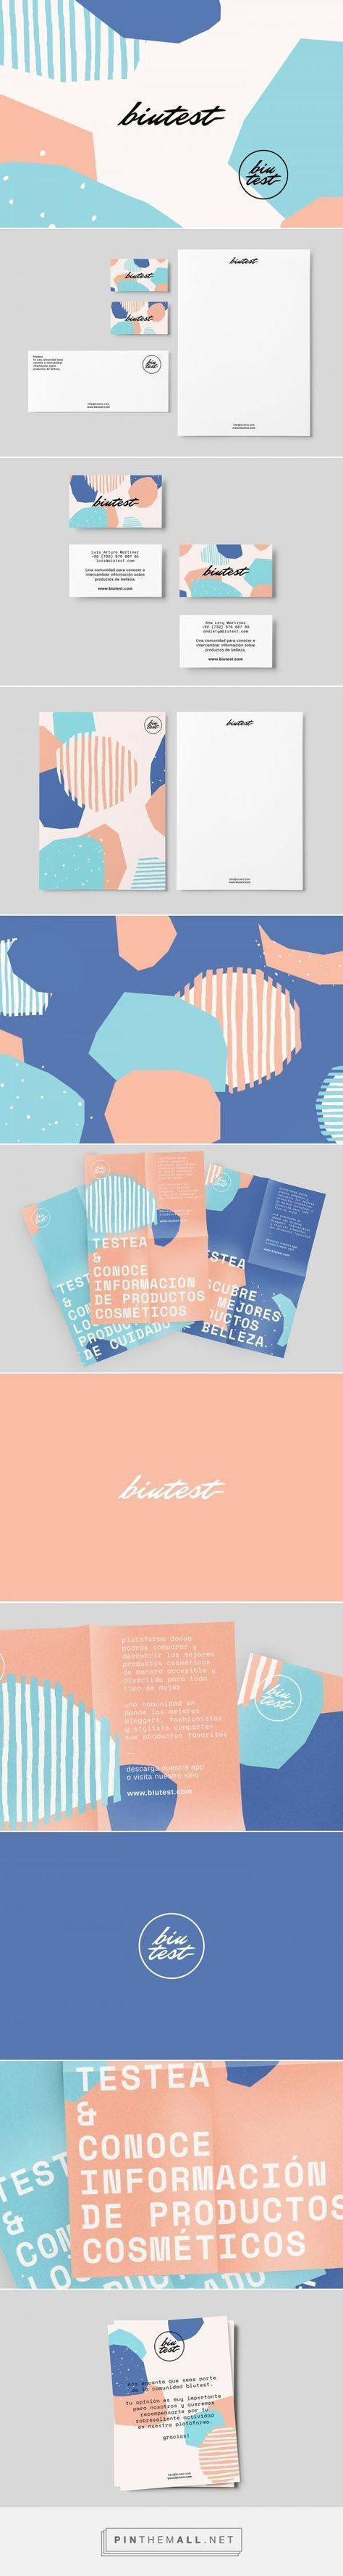 BIUTEST Online Beauty Community Branding by Dum Dum Design Office | Fivestar Branding Agency – Design and Branding Agency & Curated Inspiration Gallery